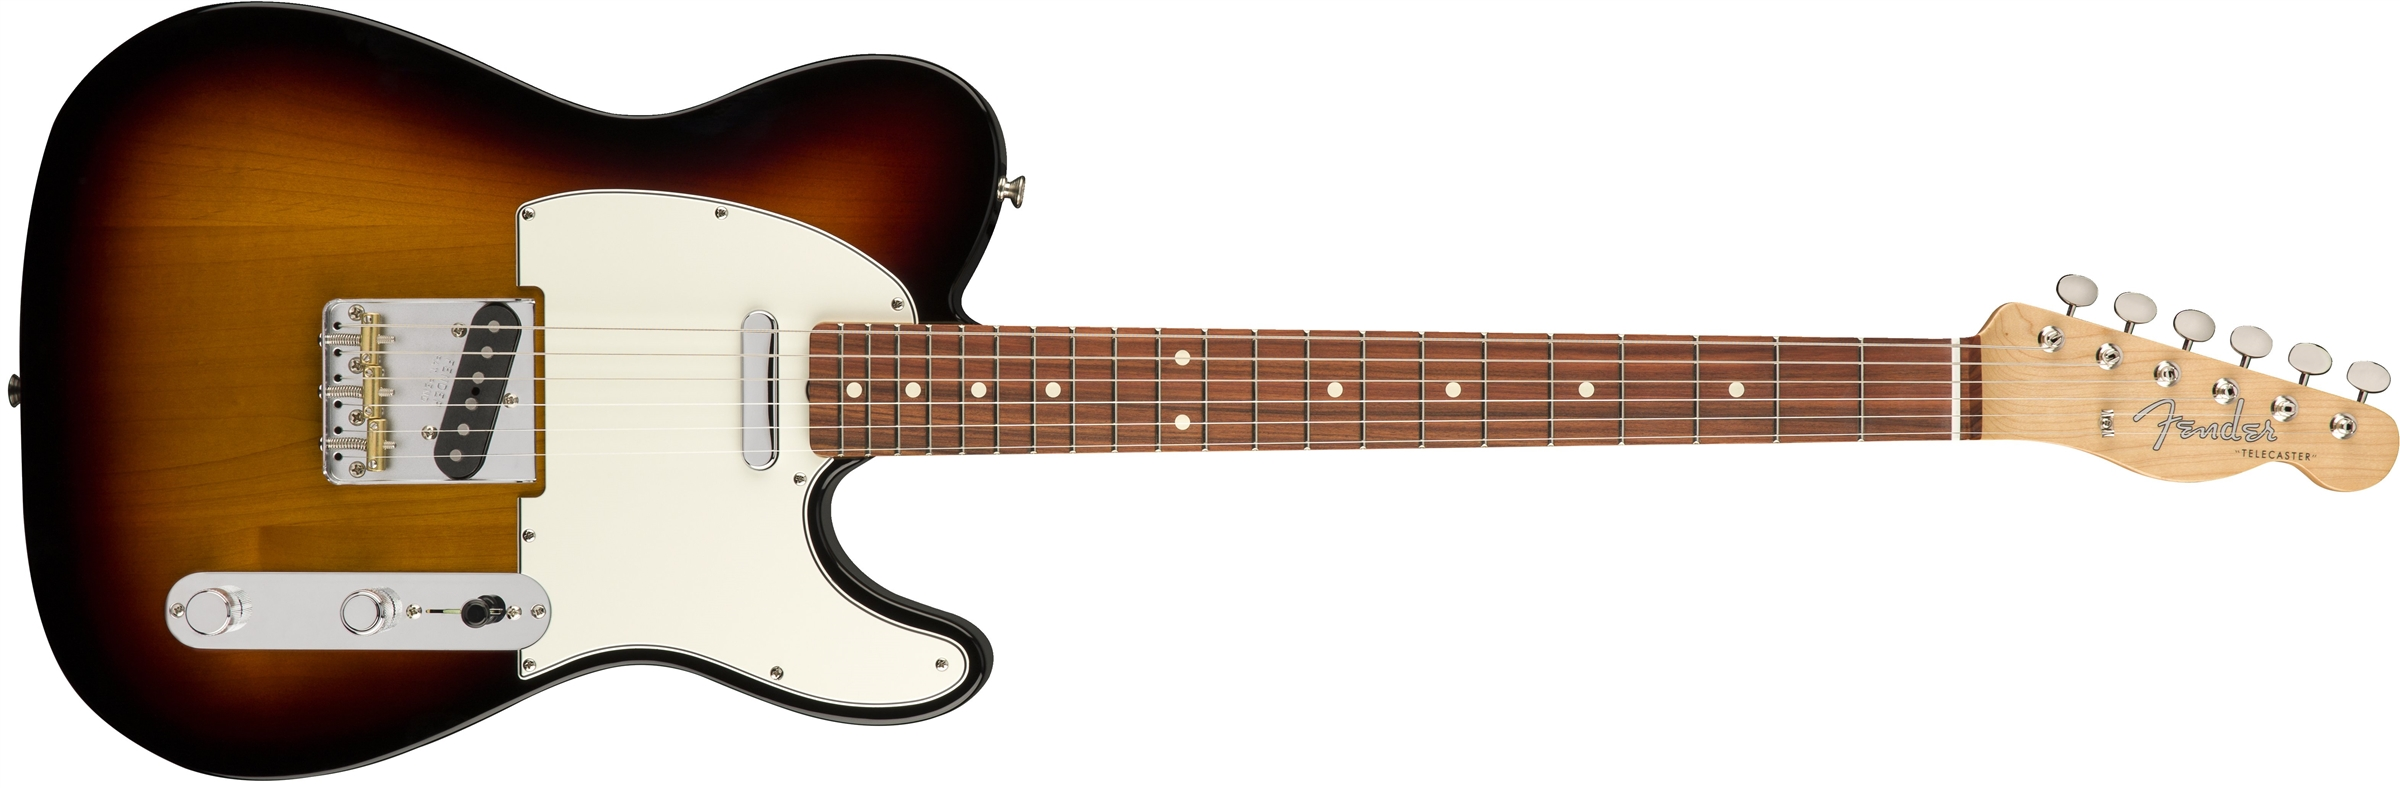 Clic Player Baja '60s Telecaster® | Electric Guitars on